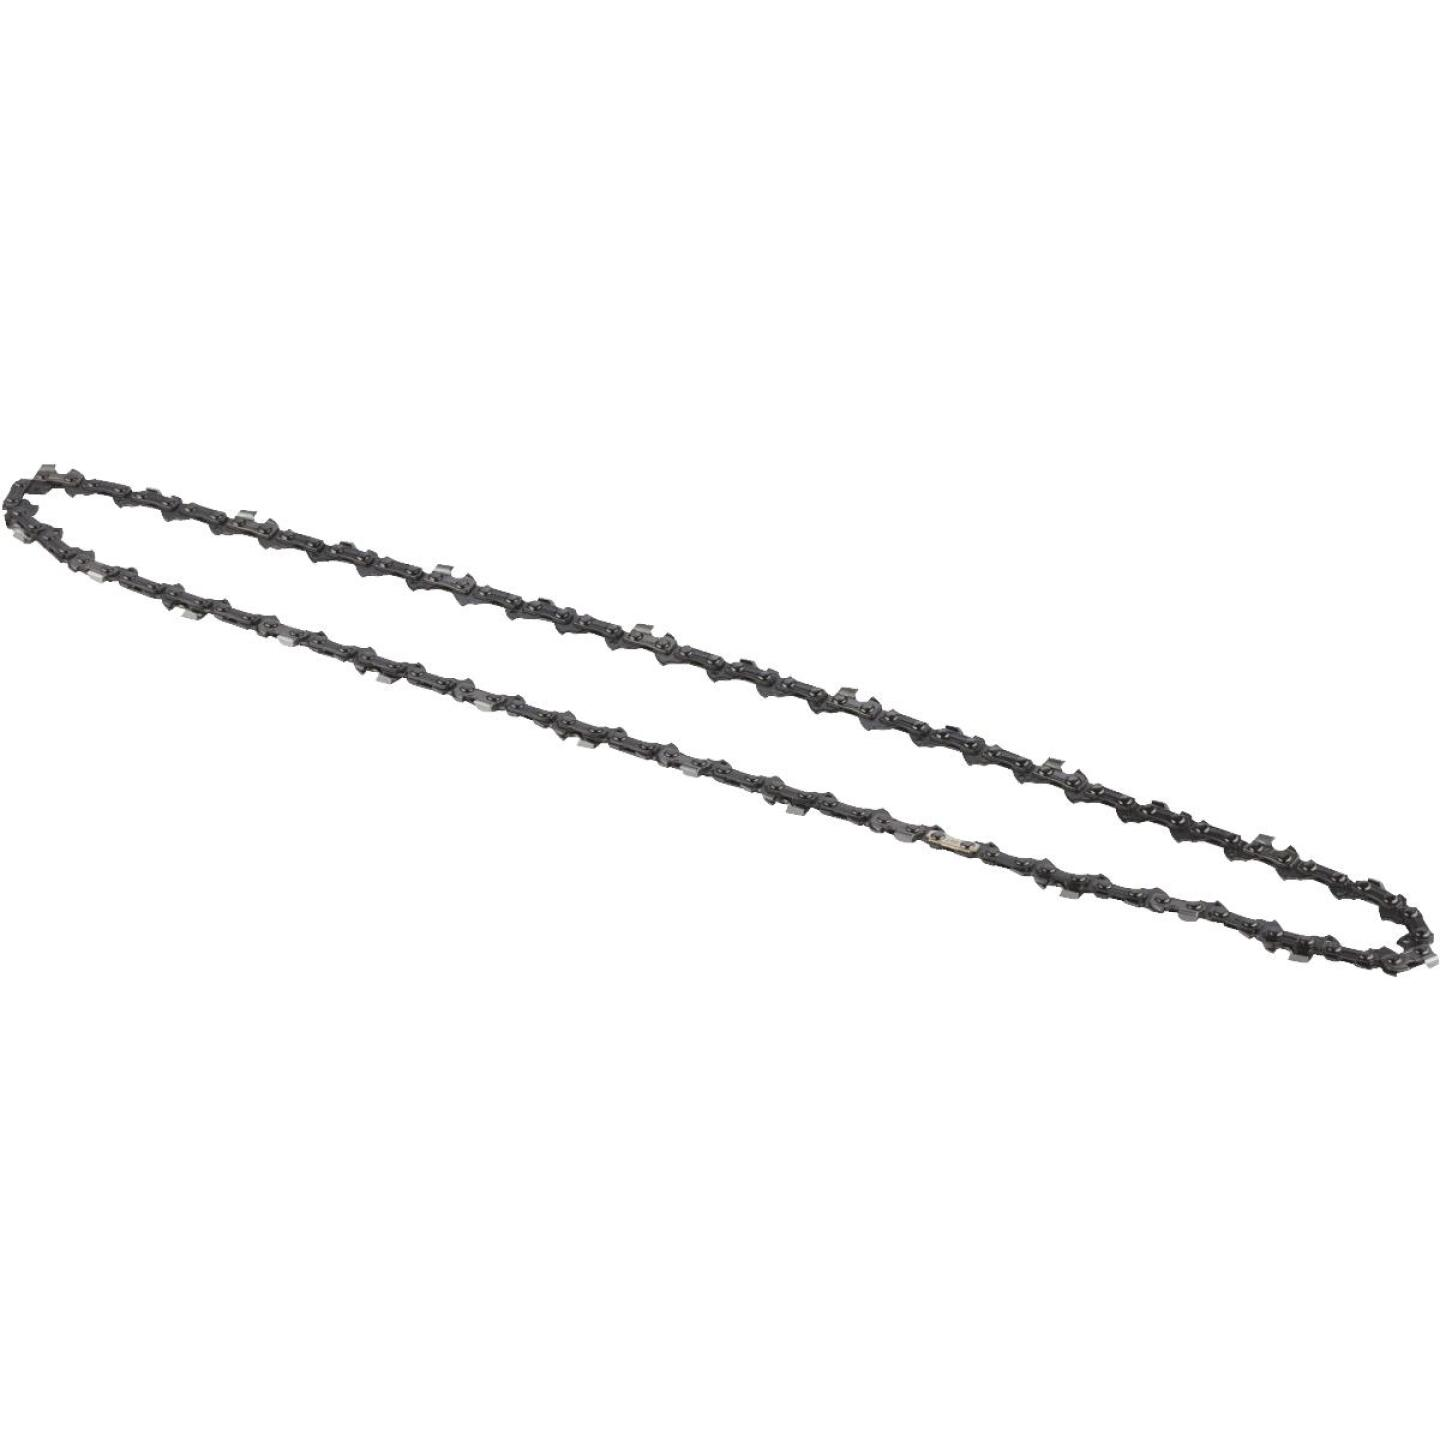 Oregon S57 16 In. Chainsaw Chain Image 3